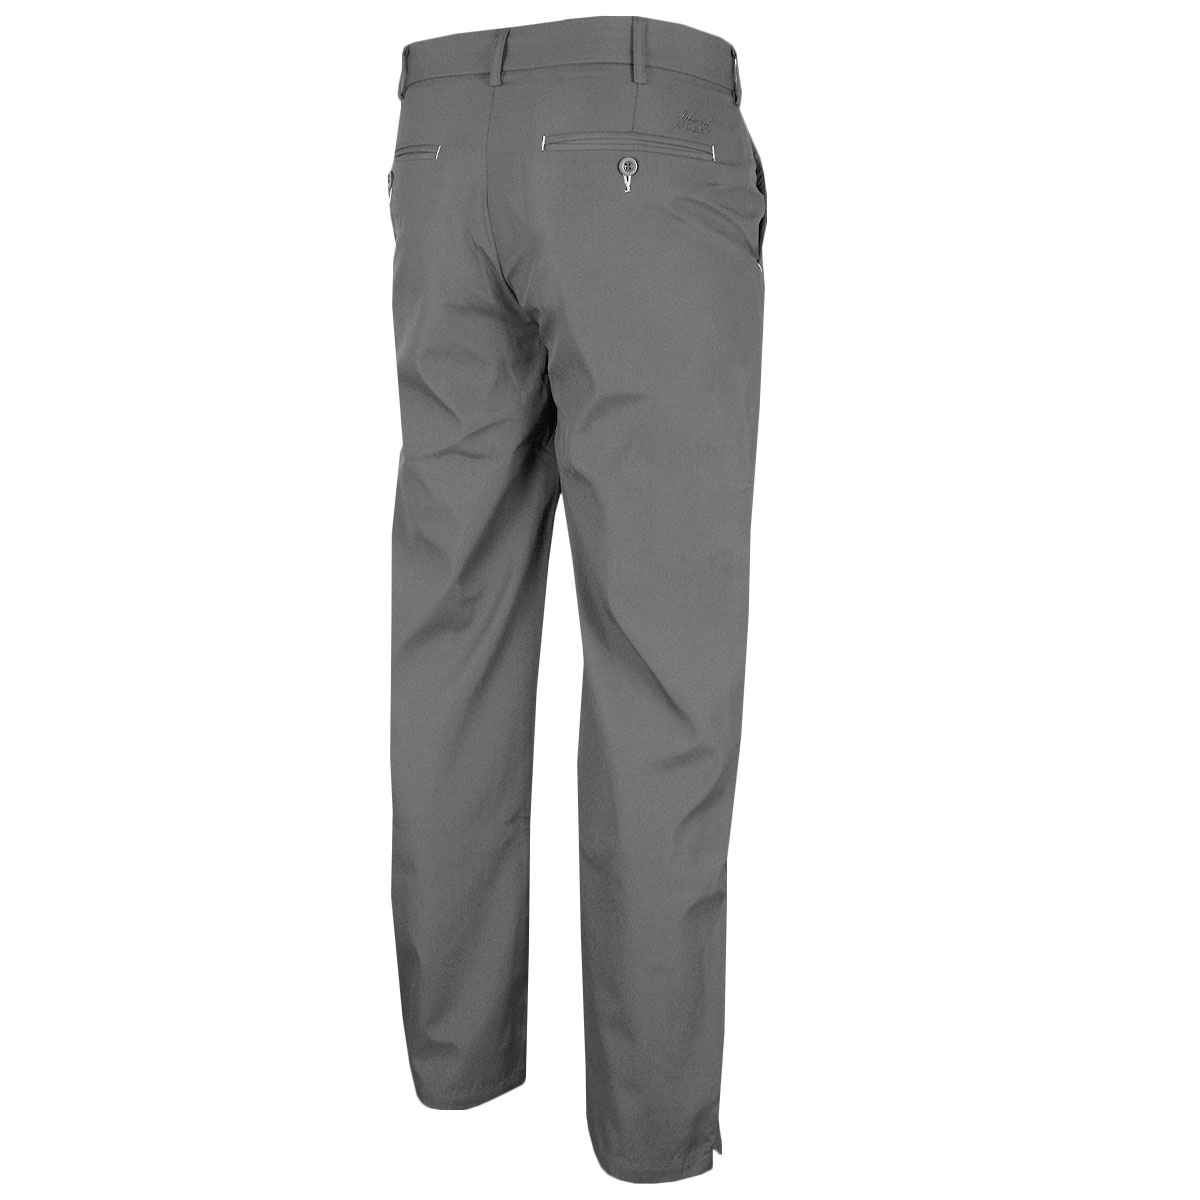 Island-Green-Mens-2019-Golf-All-Weather-Water-Resistant-Golf-Trouser-33-OFF-RRP thumbnail 6